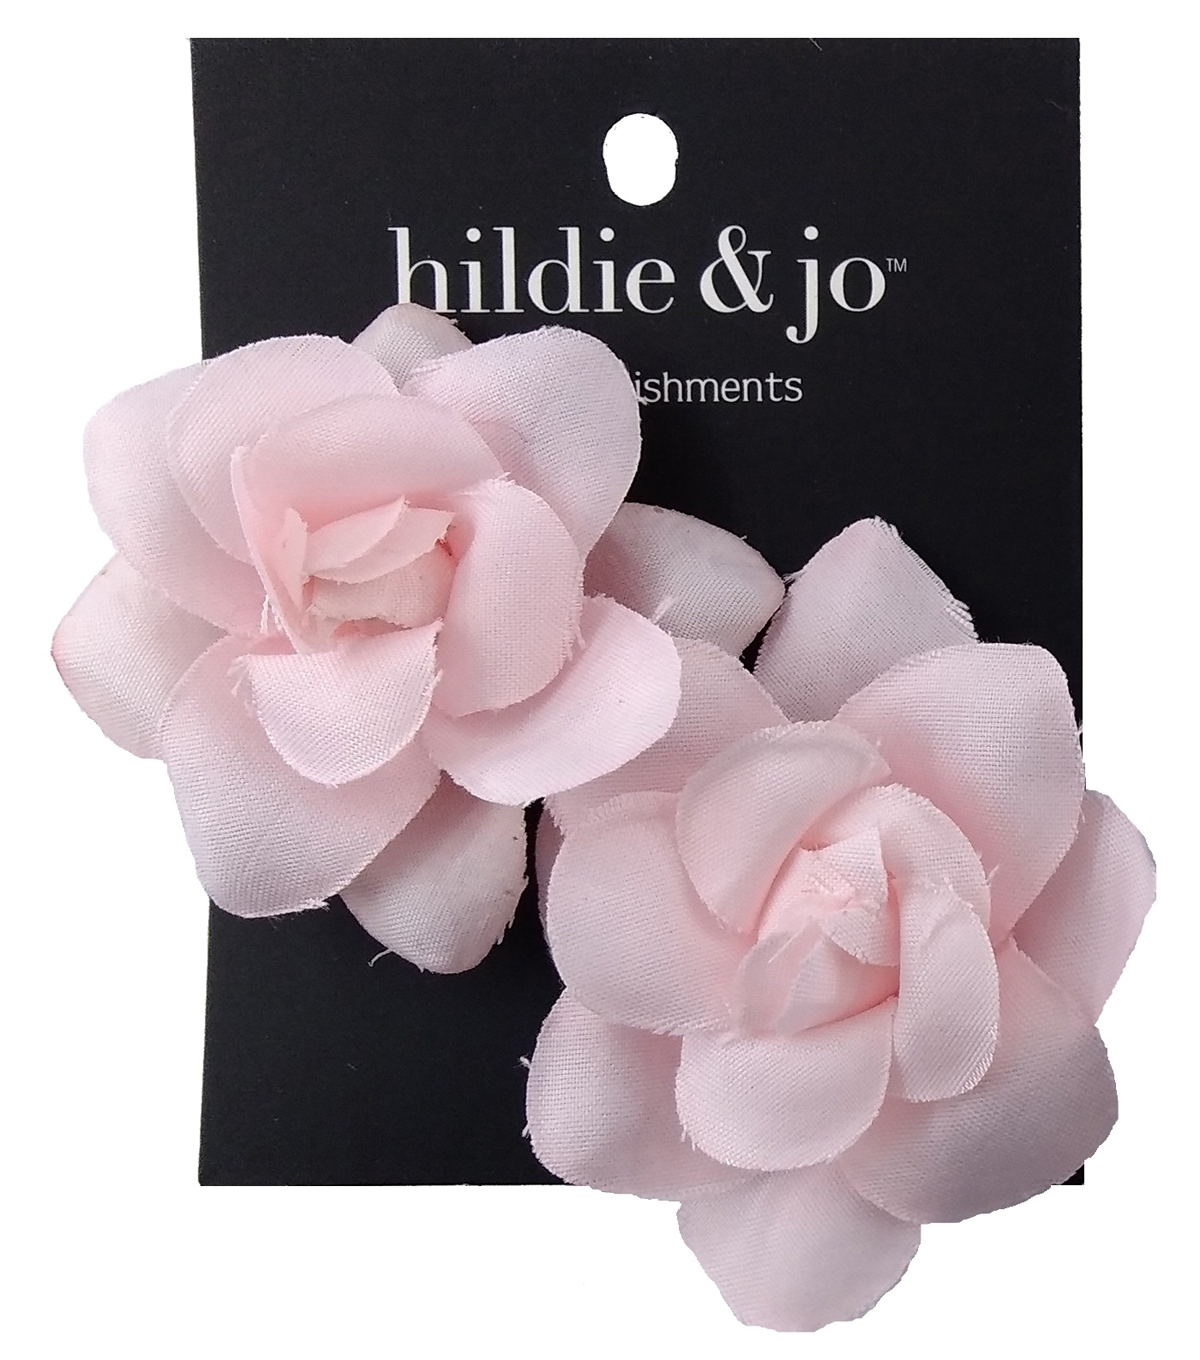 hildie & jo 2 pk Medium Rose Embellishments-Pink